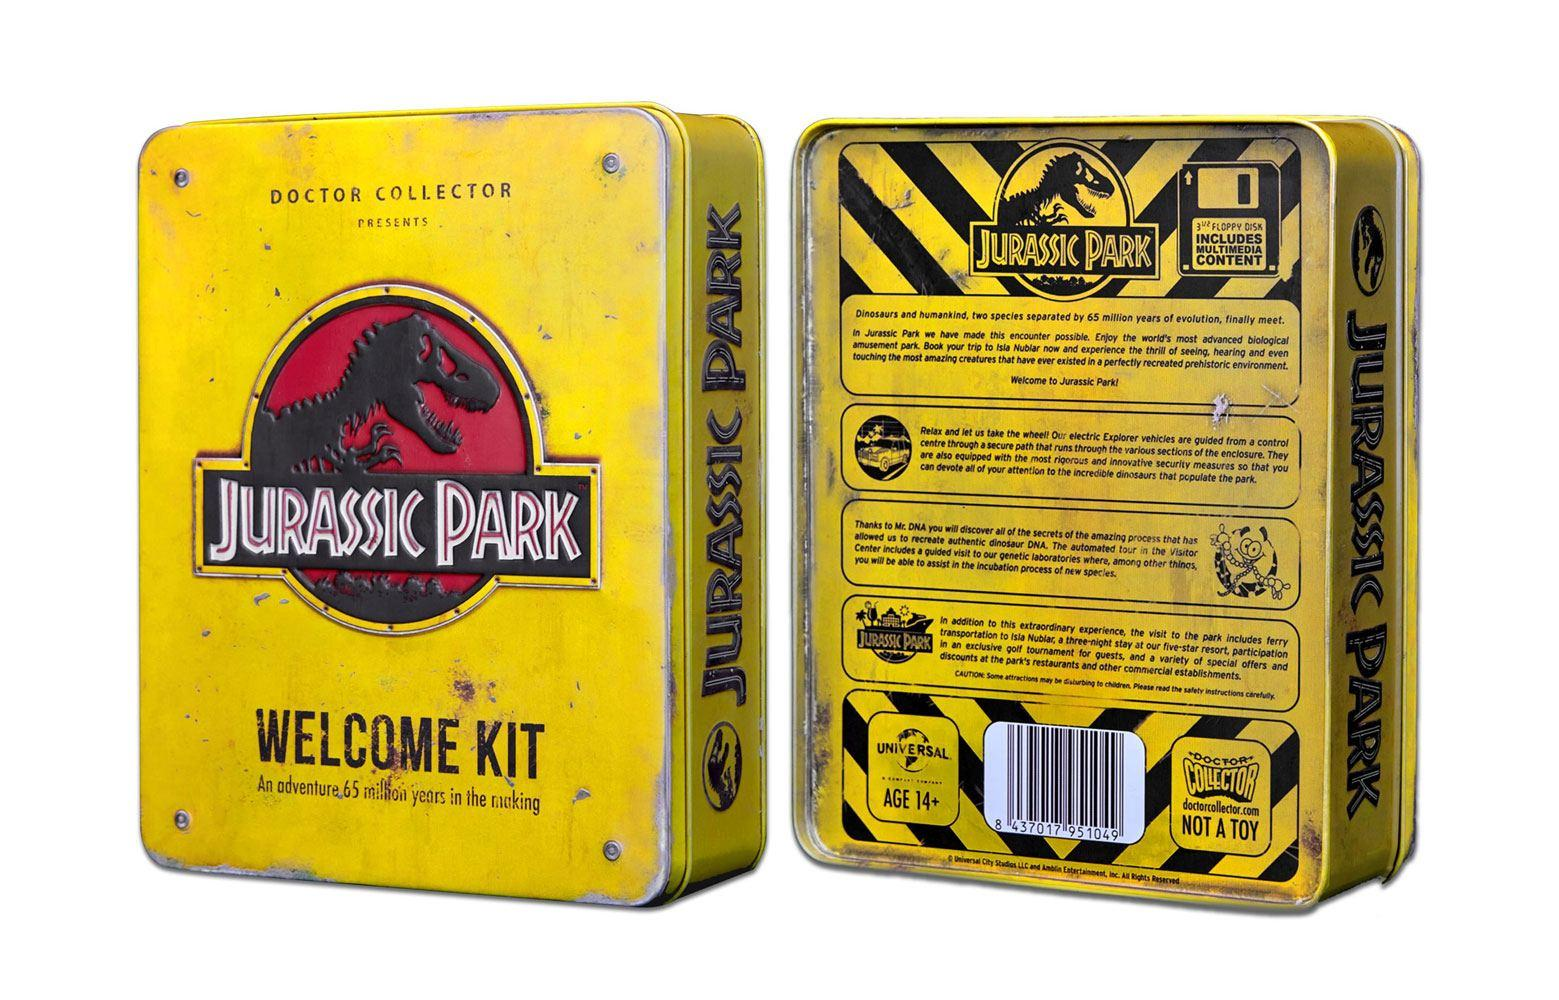 Coffret kit welcome jurassic park suukoo toys collection jouet 1